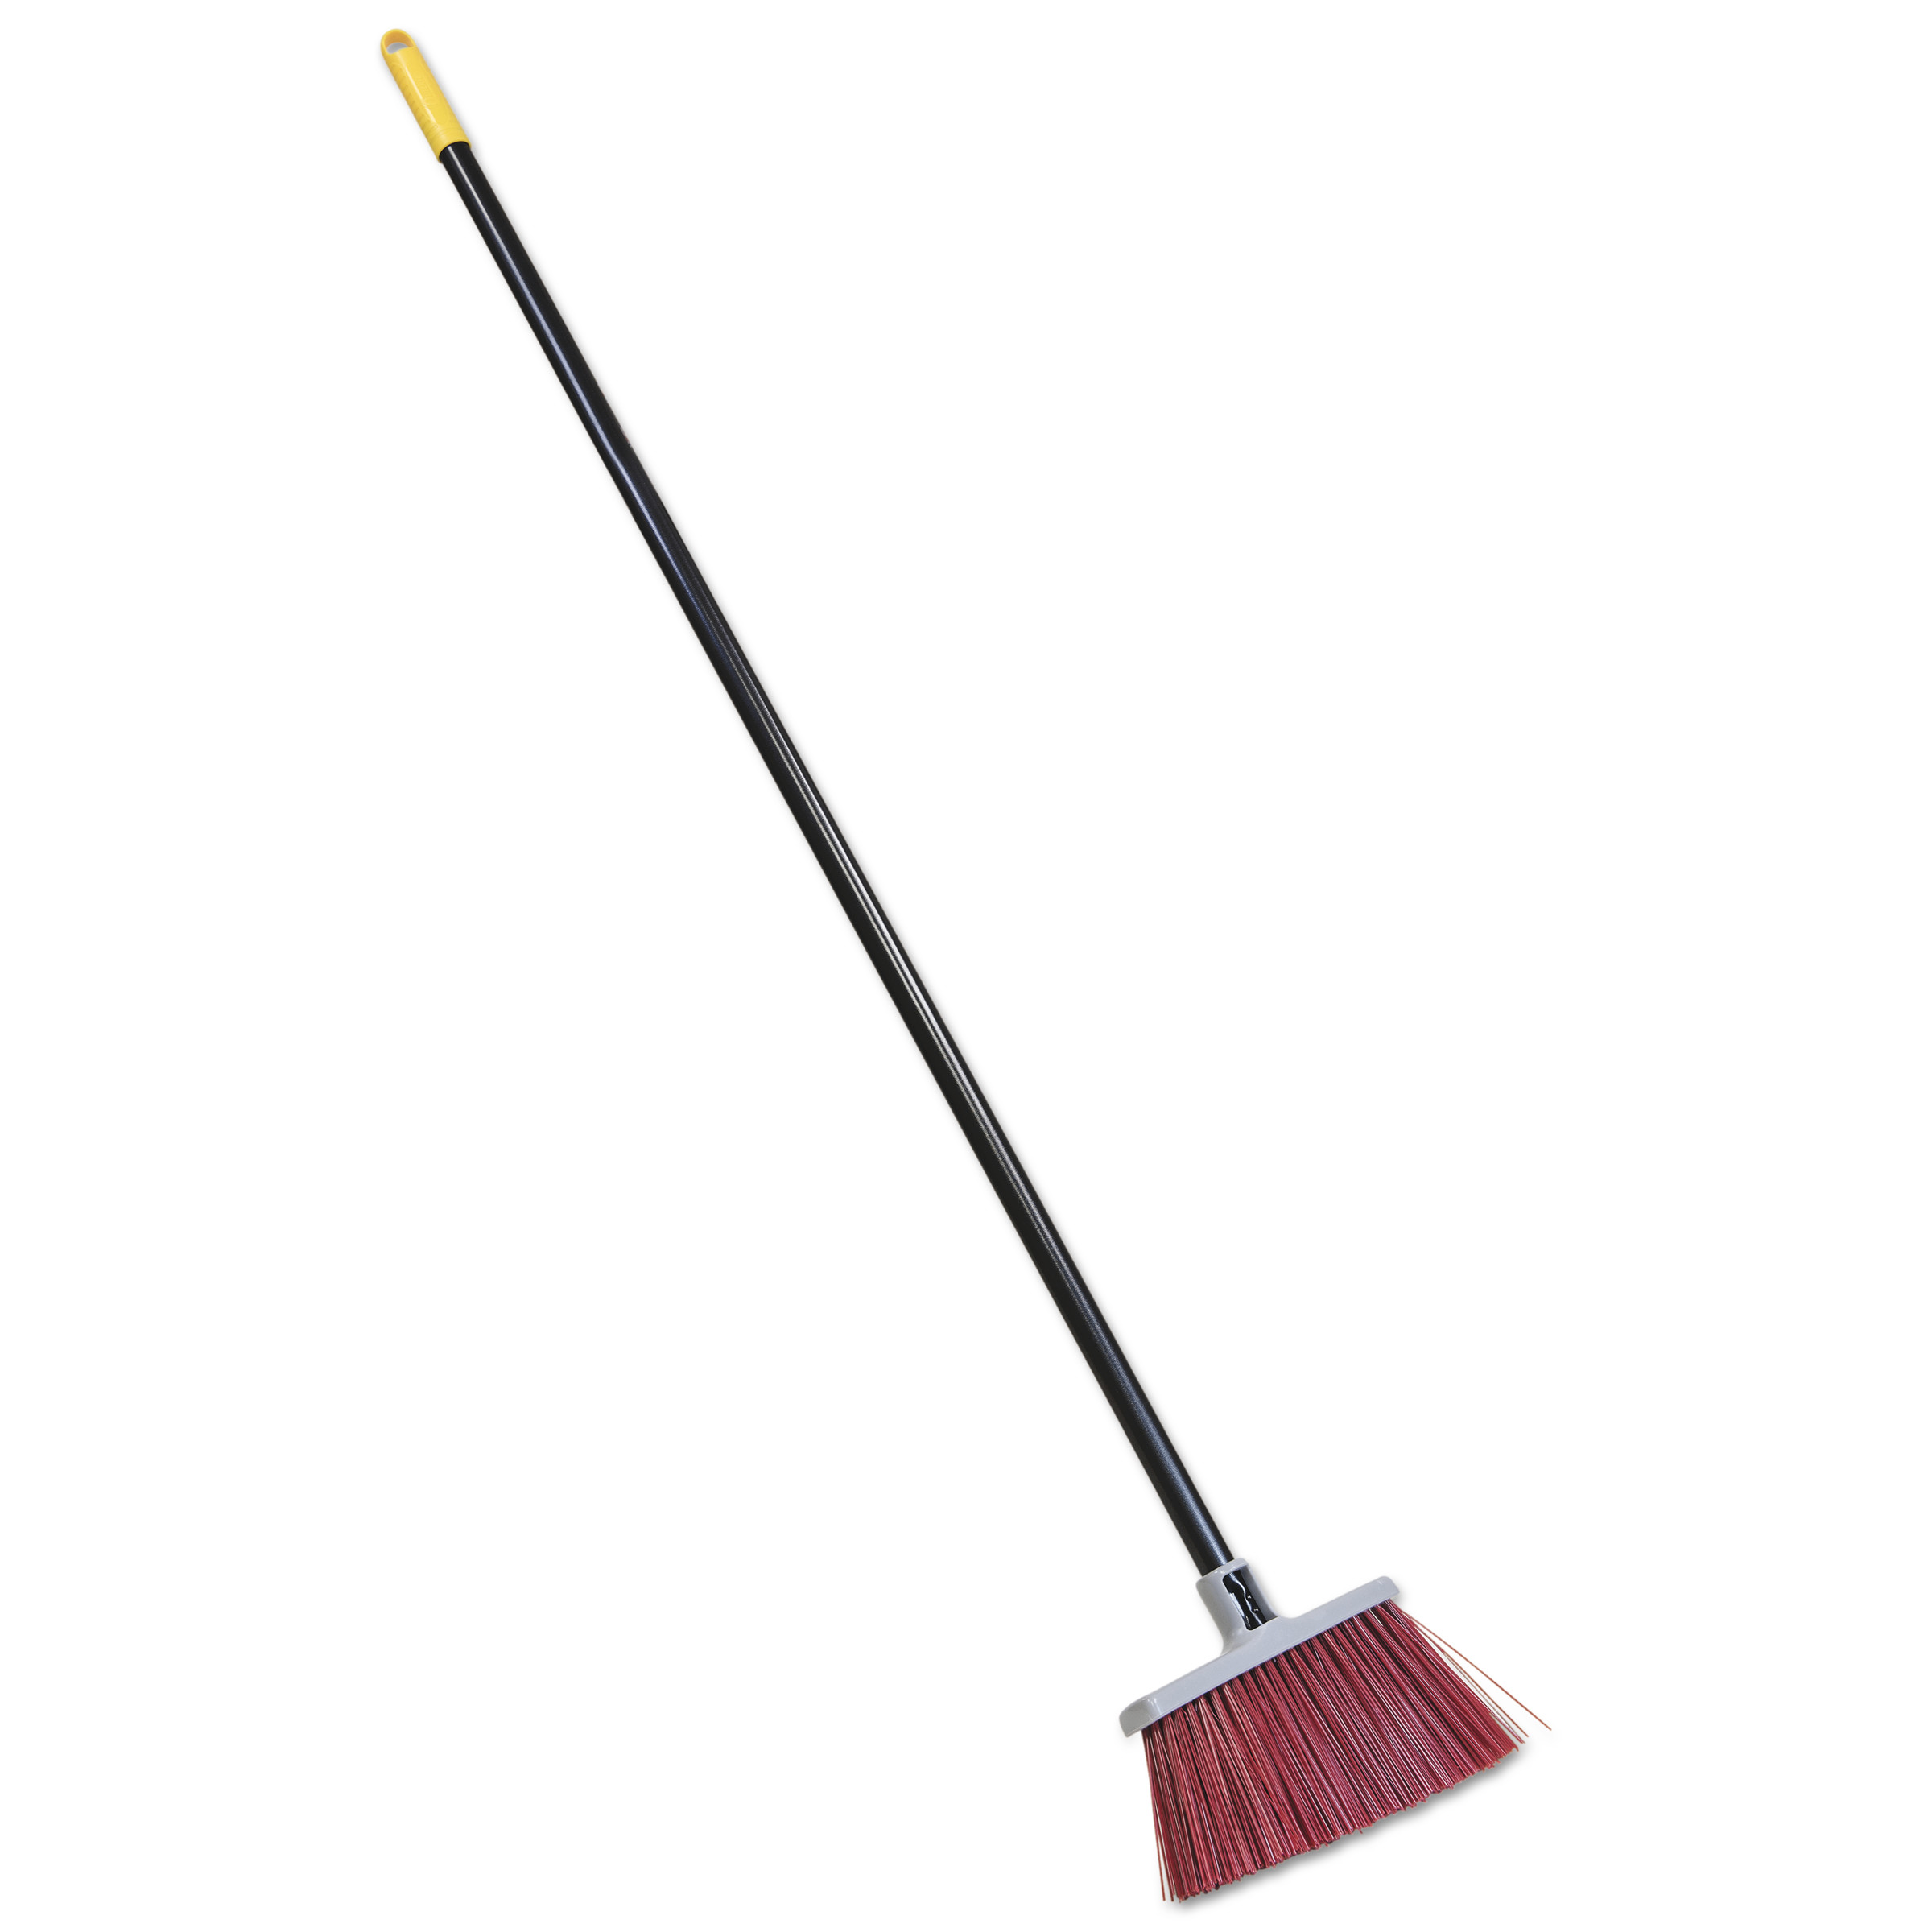 "Quickie Bulldozer Landscaper's Upright Broom, 48"" Handle, 4"" Bristles, Red/Gray"